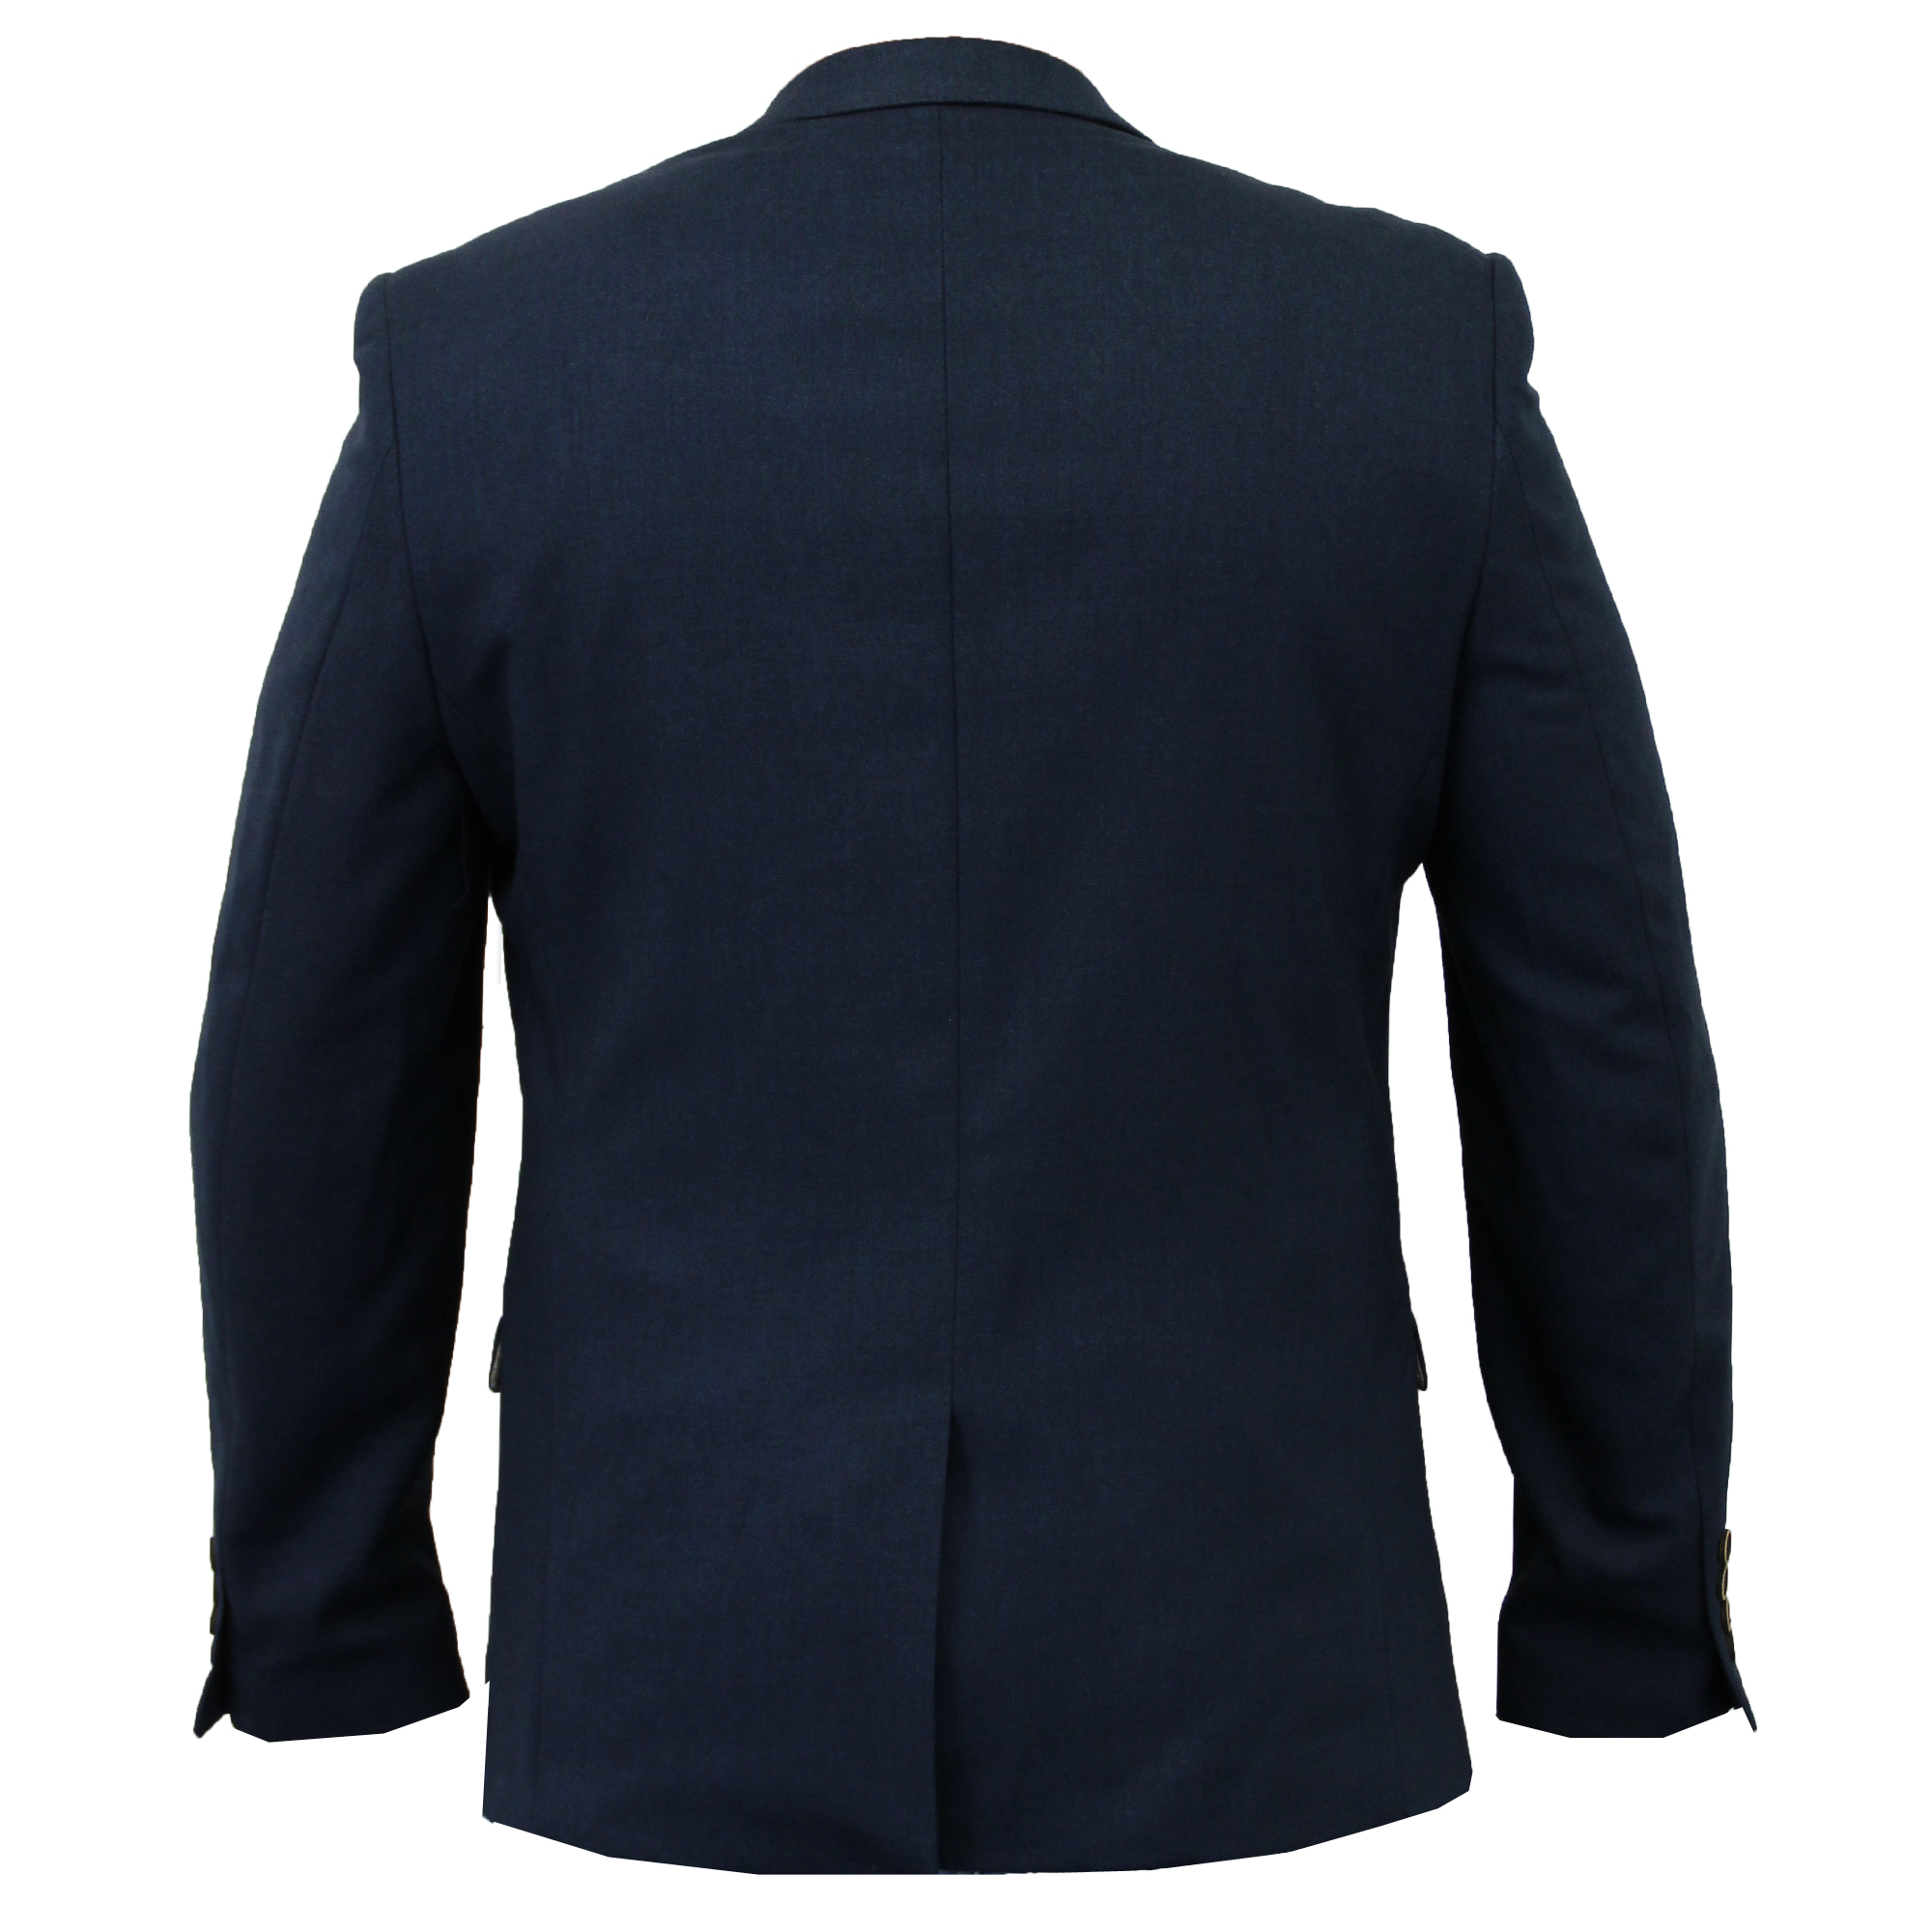 Shop for men's tuxedos & formal attire online at jomp16.tk Browse the latest Suits styles for men from Jos. A Bank. FREE shipping on orders over $ ,